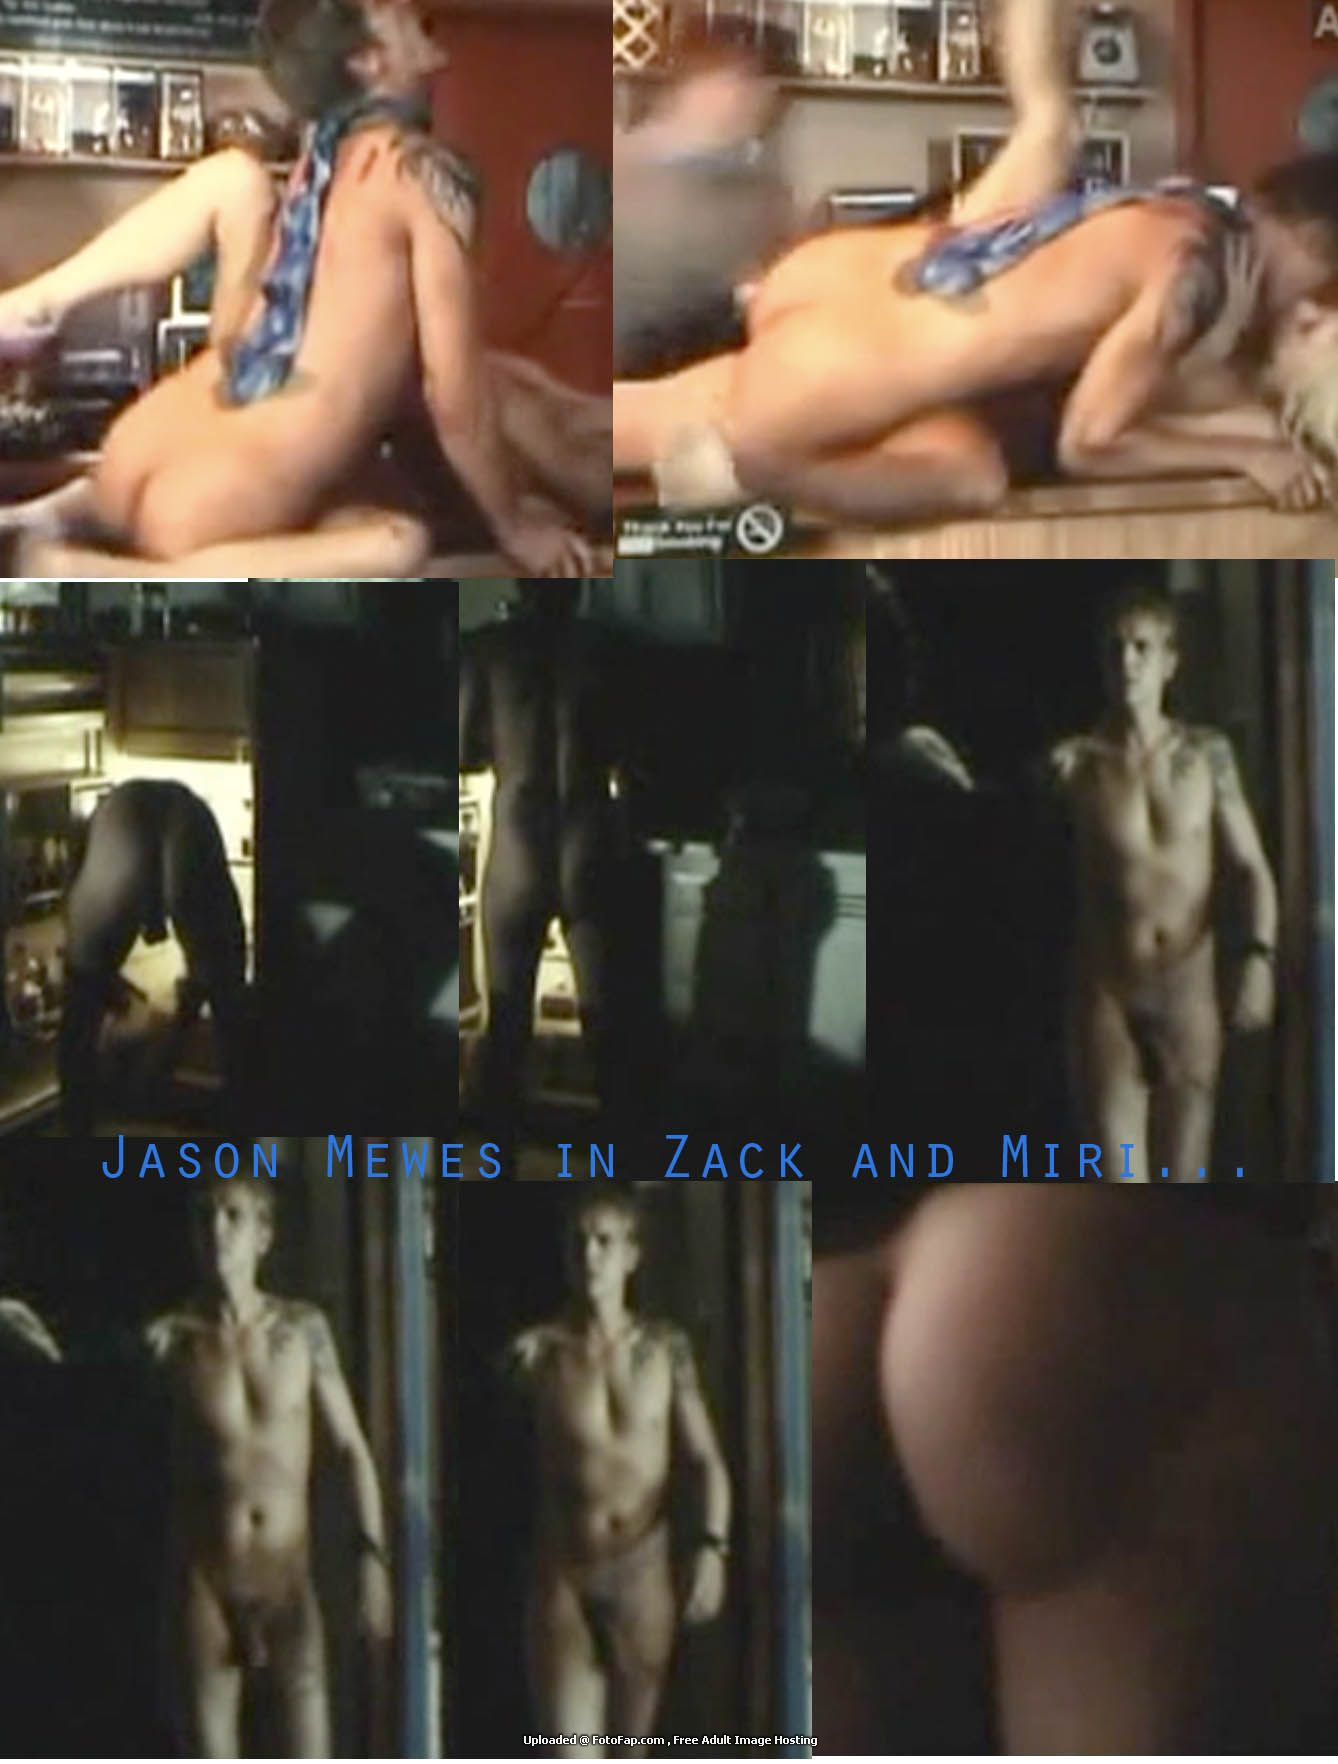 jason mewes fake nude porn archive